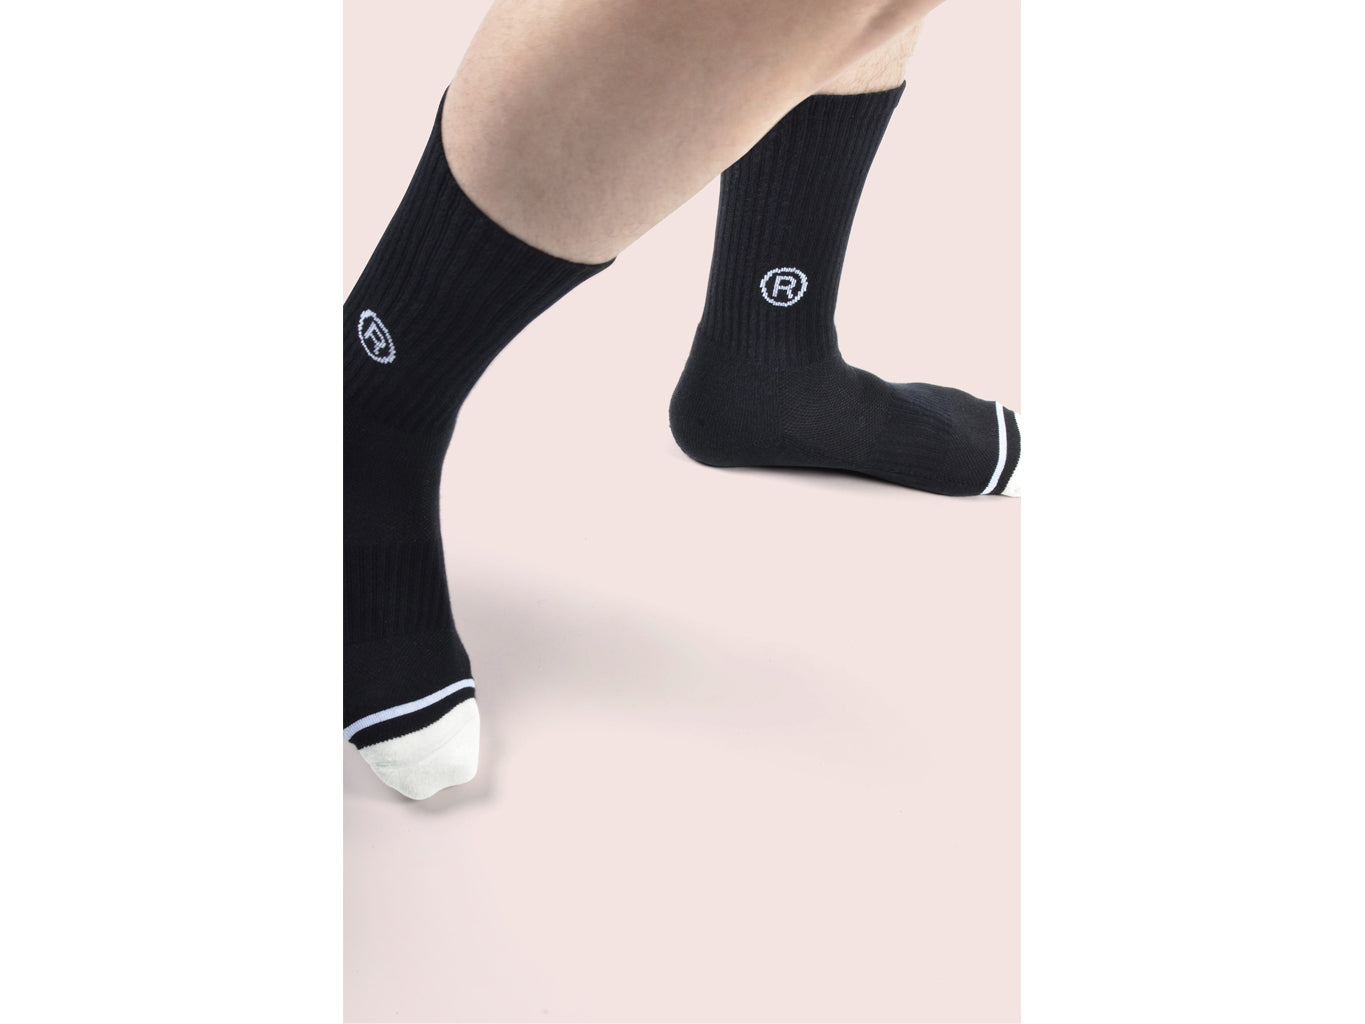 SeventyFive <br> BLK <br> MID-CALF ATHLETIC